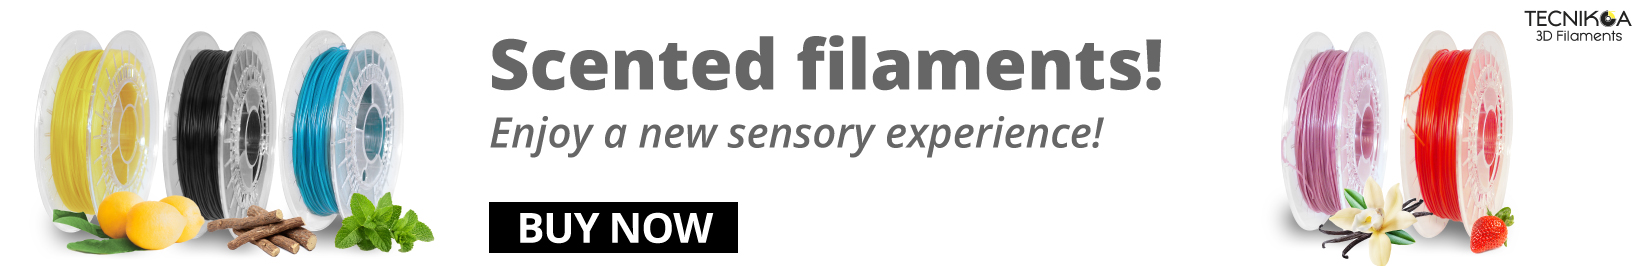 scented 3d filaments